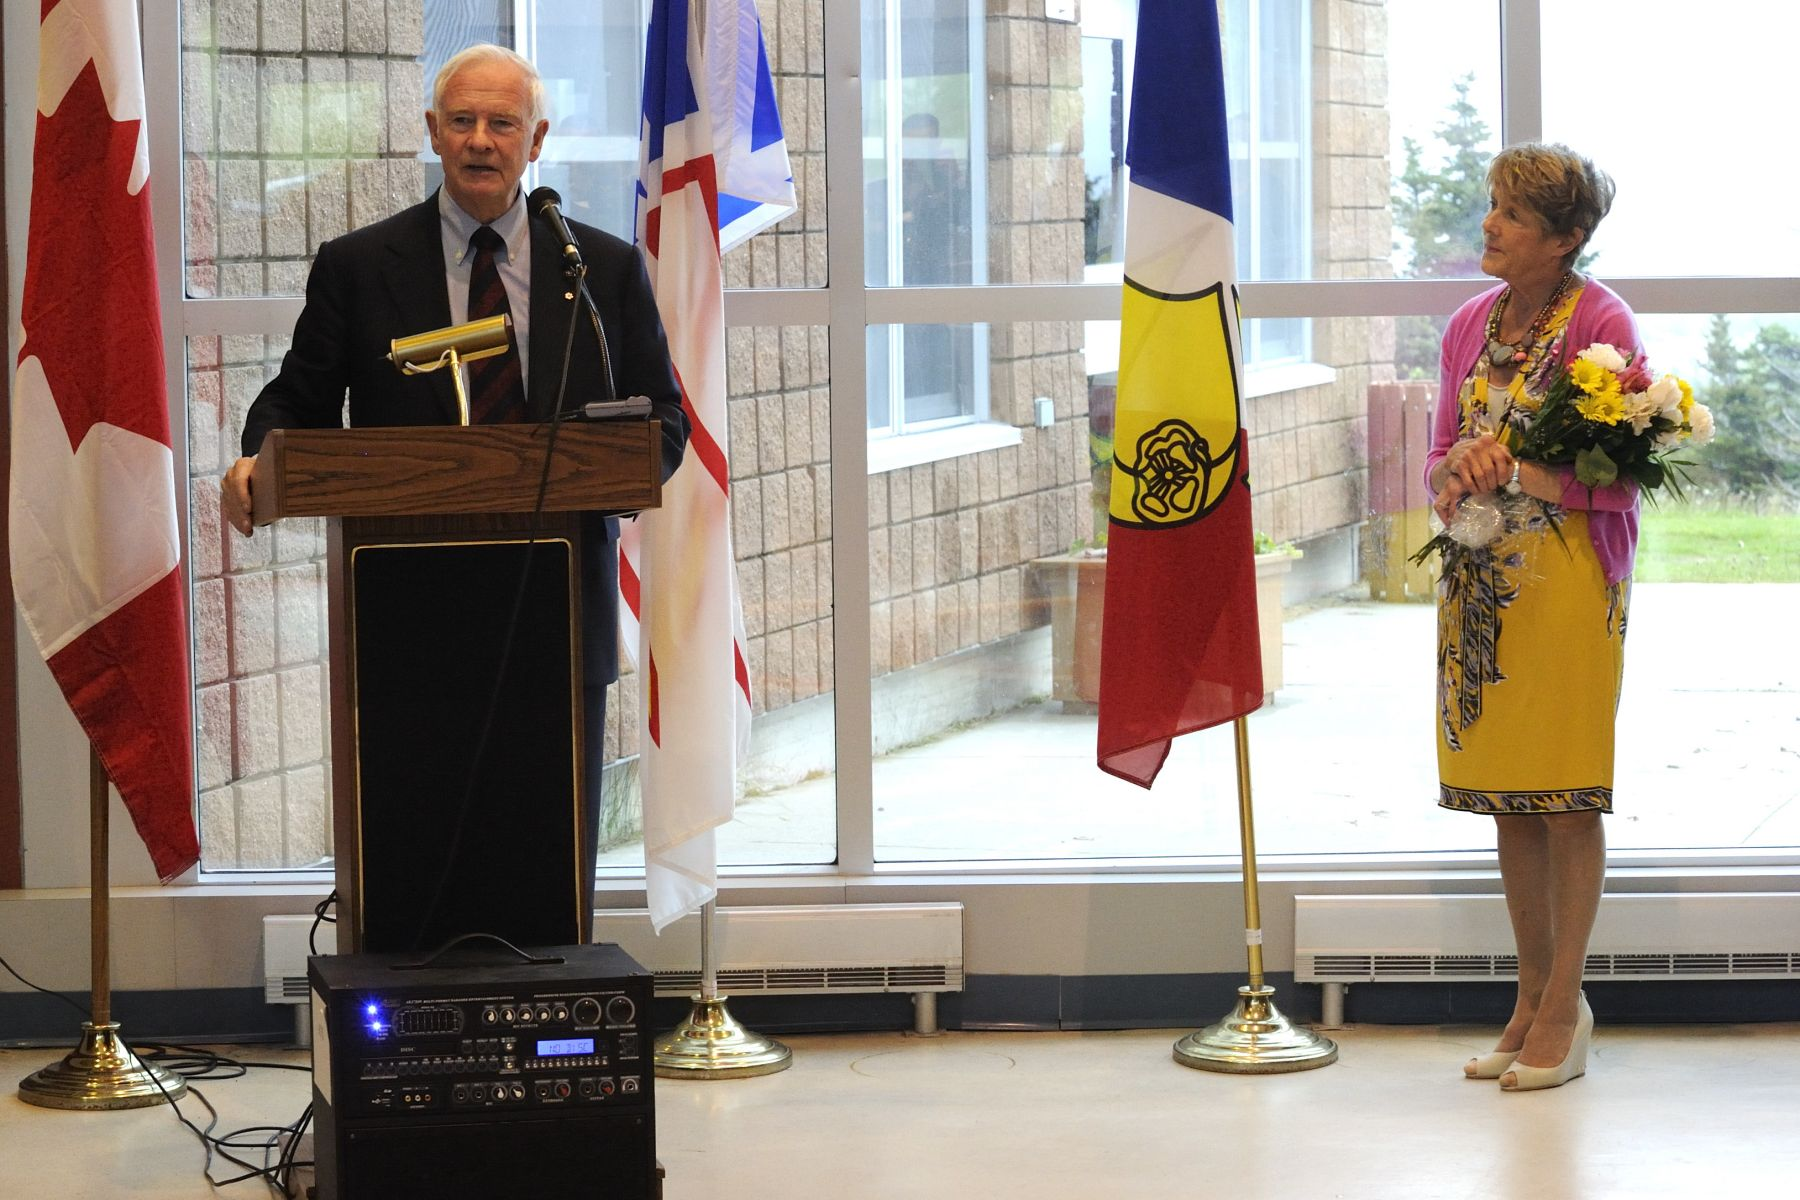 On Saint-Jean-Baptiste Day, Their Excellencies met with members of the Fédération des francophones de Terre-Neuve et du Labrador (FFTNL) at the Centre scolaire et communautaire des Grands-Vents, in St. John's. They visited the facility and discussed the importance of Francophone culture with members.